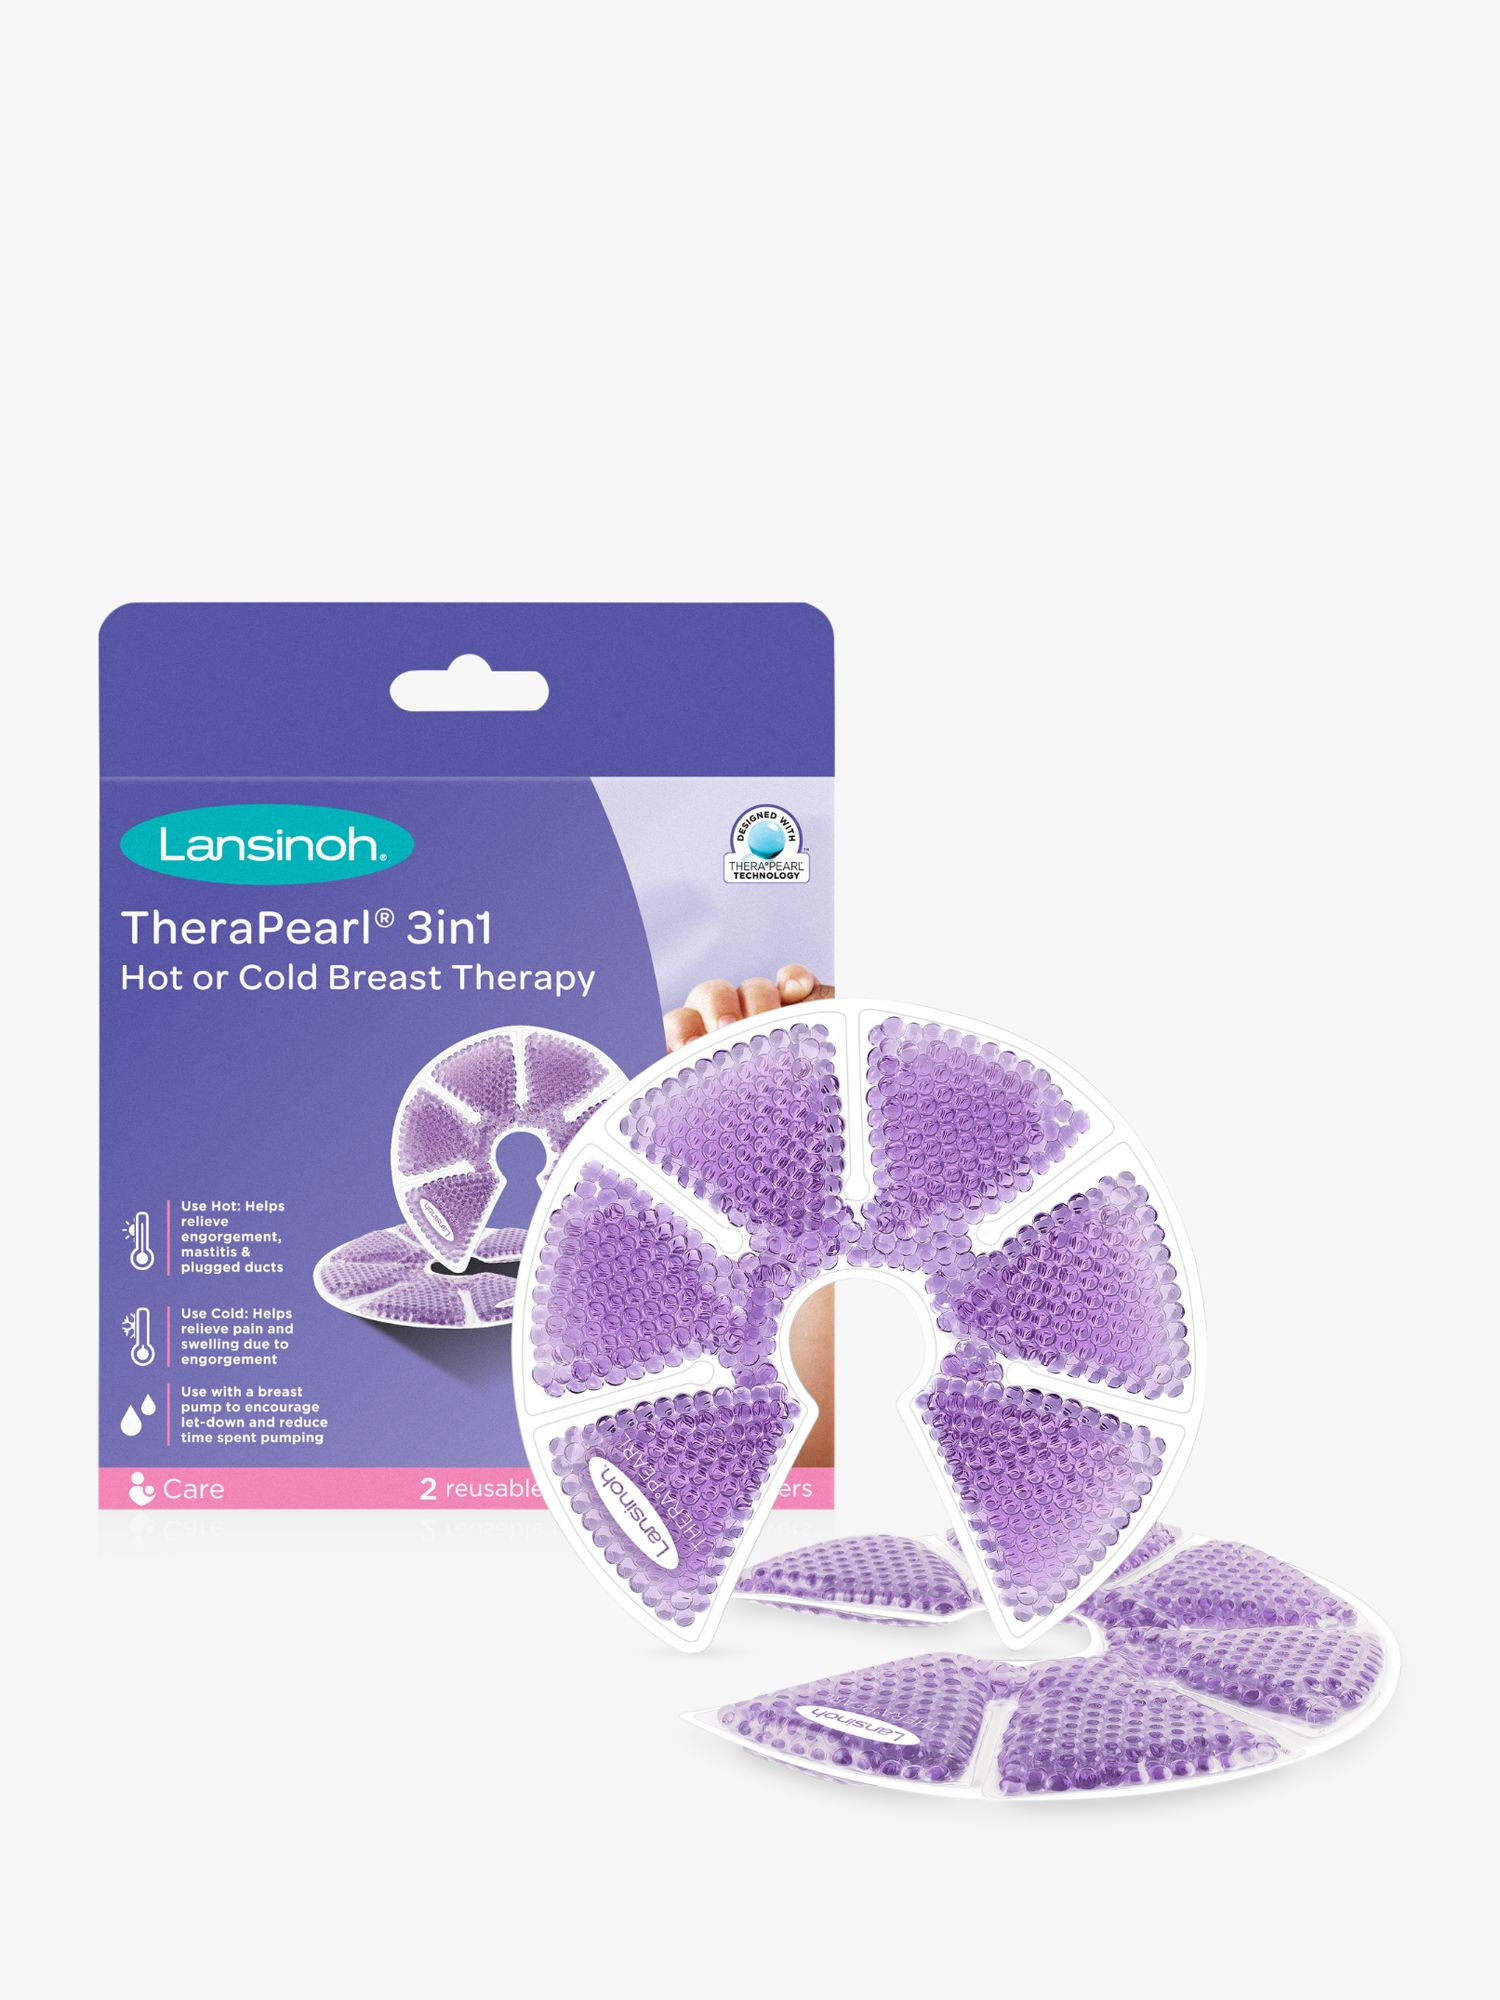 Lansinoh Lansinoh Therapearl 3-in-1 Breast Therapy Pack